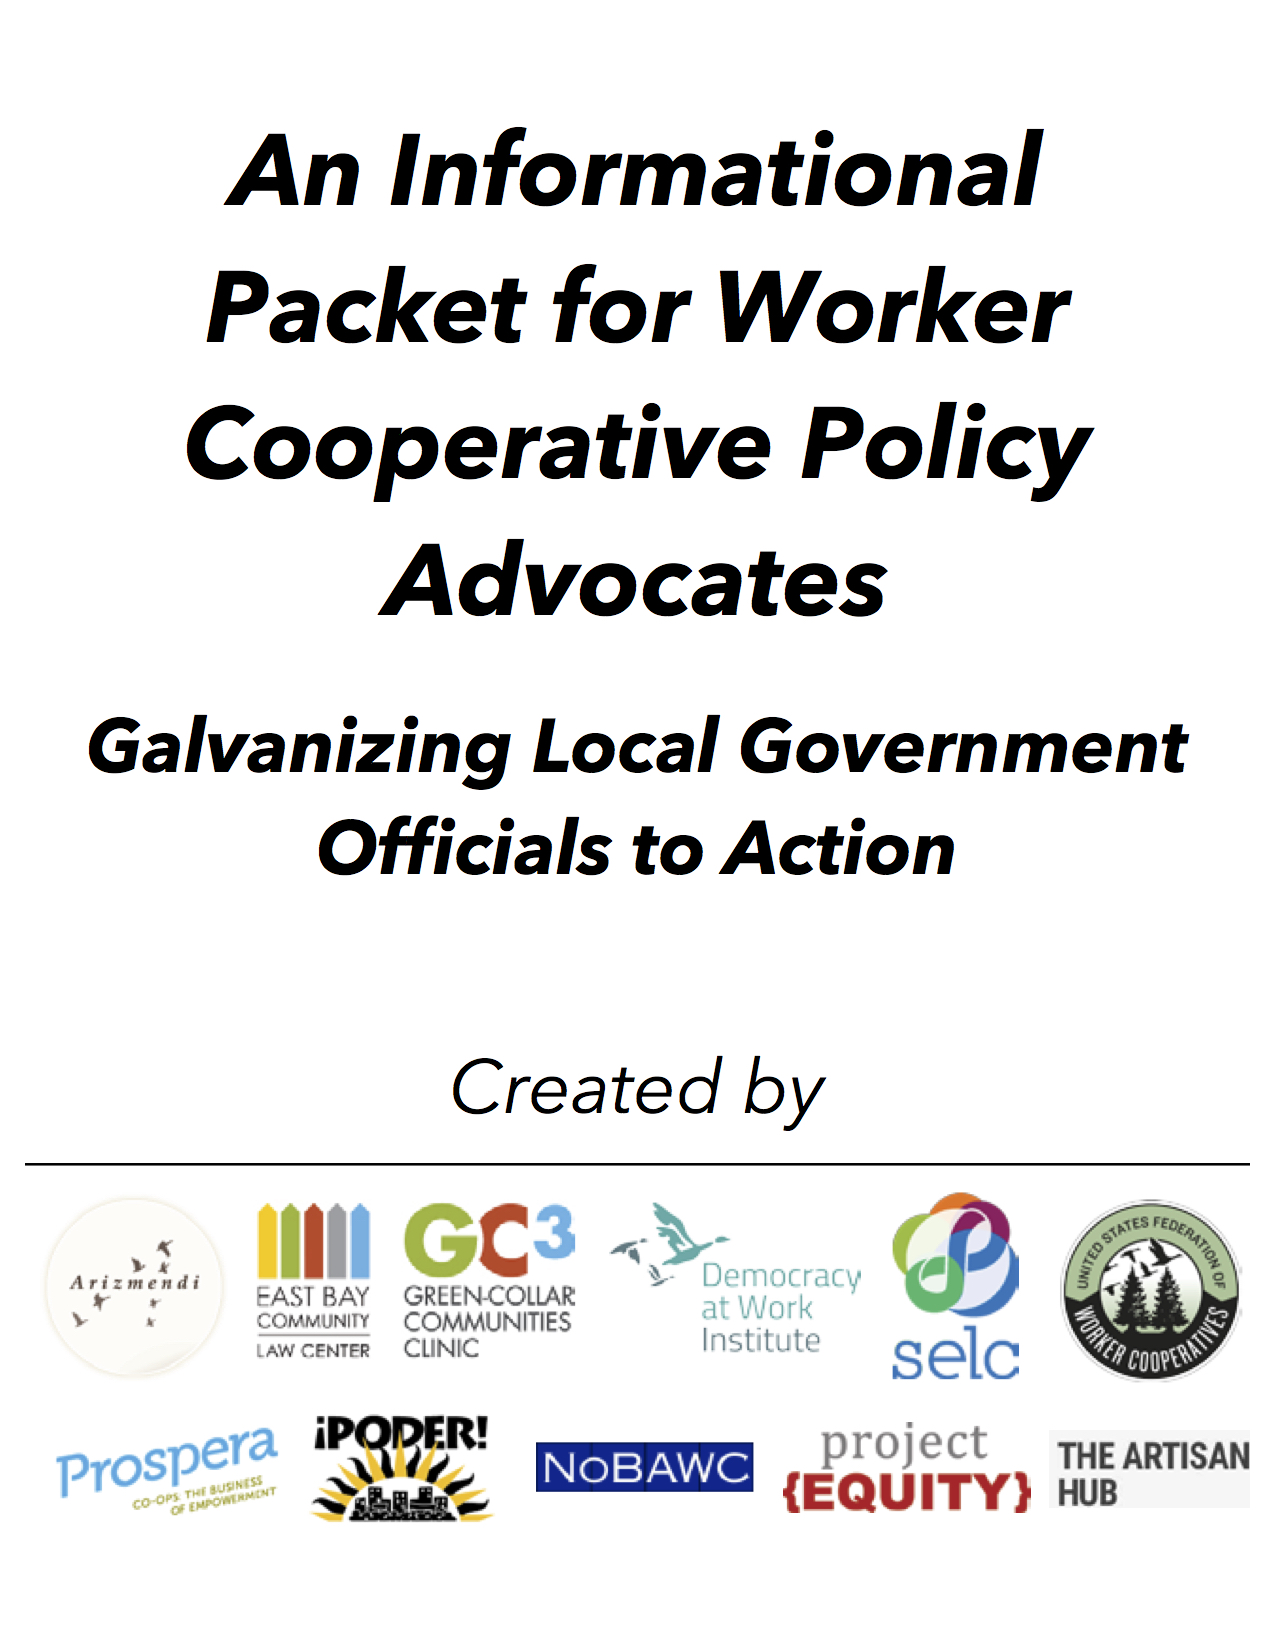 Download the informational packet we gave to Oakland City Council officials to educate them on why creating a cooperative economy was in their interest!